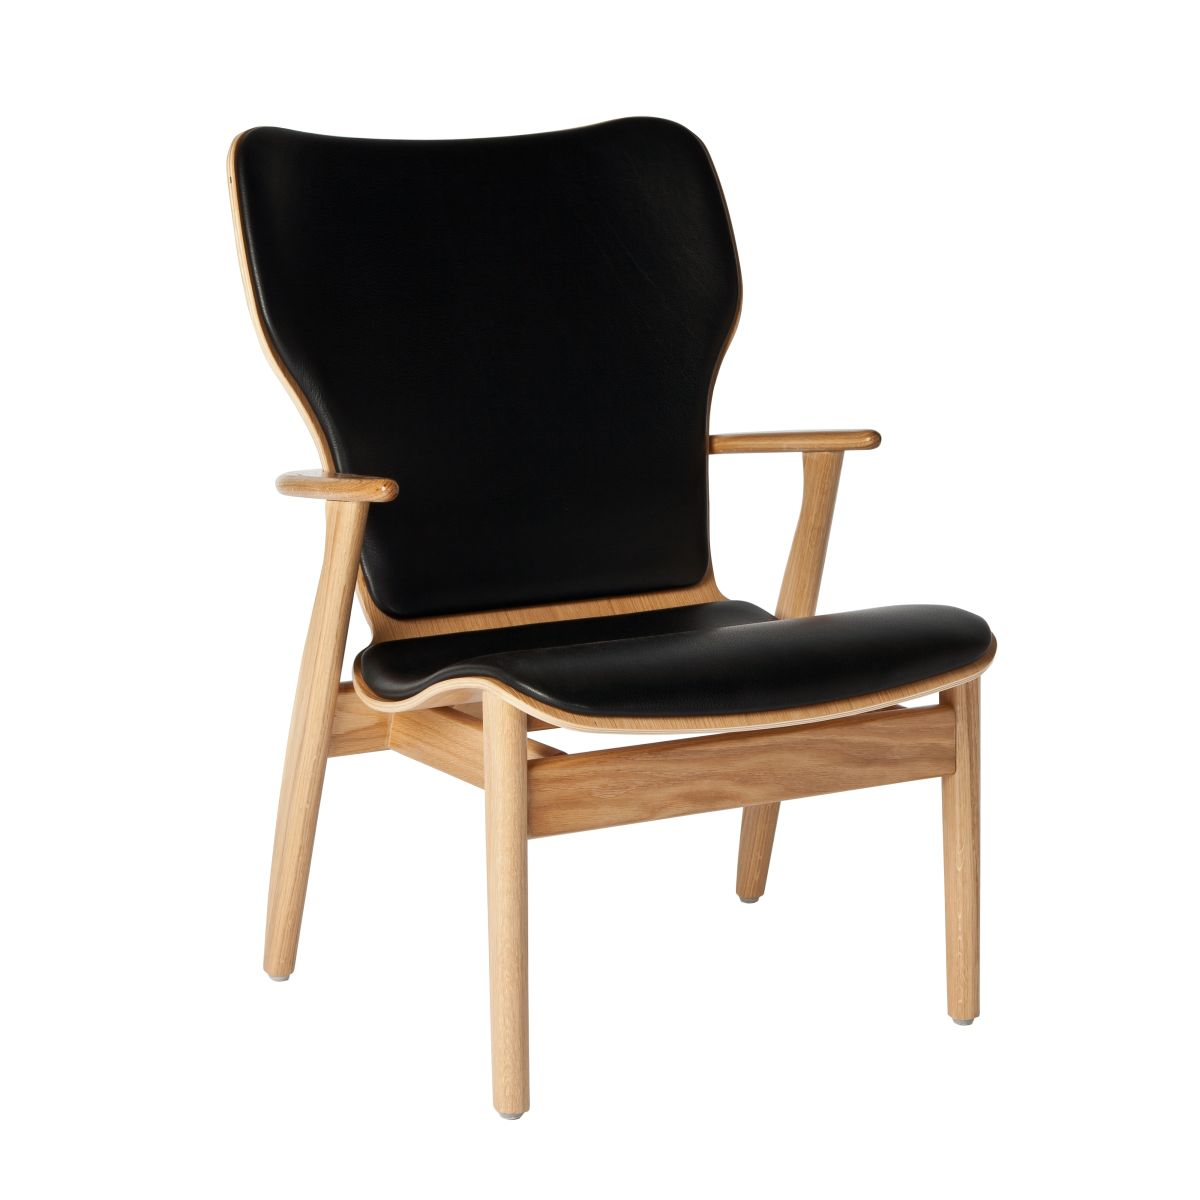 Domus-Lounge-Chair-Oak-Upholstered-1855920